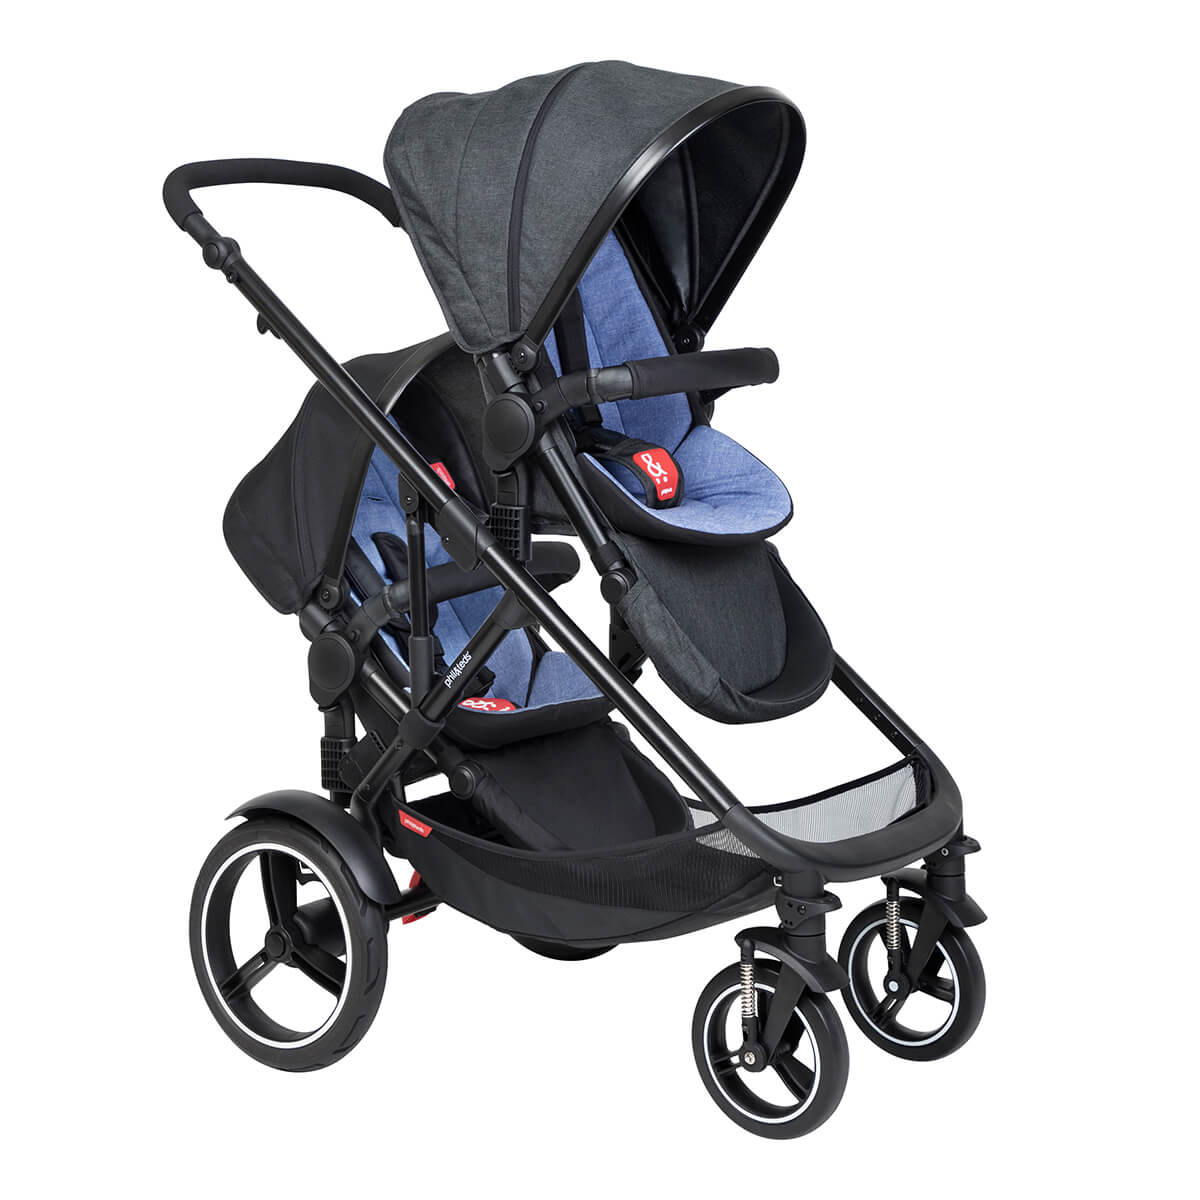 https://cdn.accentuate.io/4513464516704/19440099852472/philteds-voyager-inline-buggy-with-double-kit-in-rear-in-sky-blue-colour-v1633401128605.jpg?1200x1200